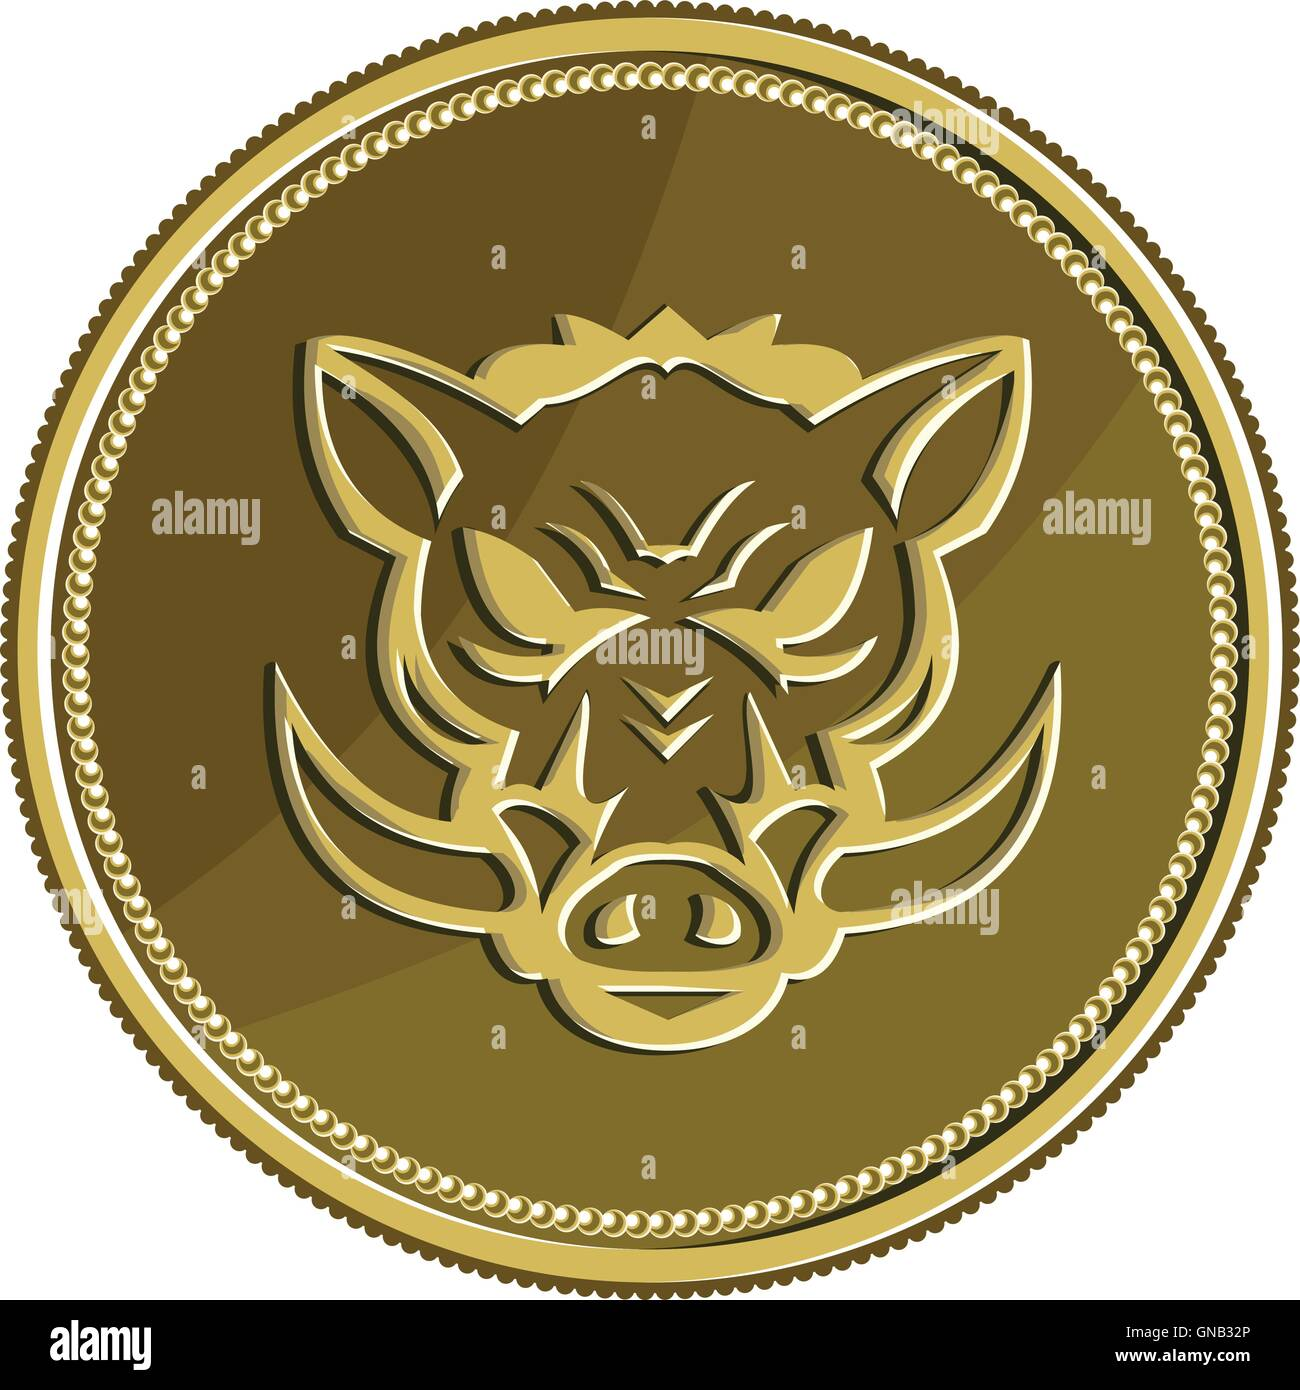 Wild hog head angry gold coin retro stock vector art wild hog head angry gold coin retro biocorpaavc